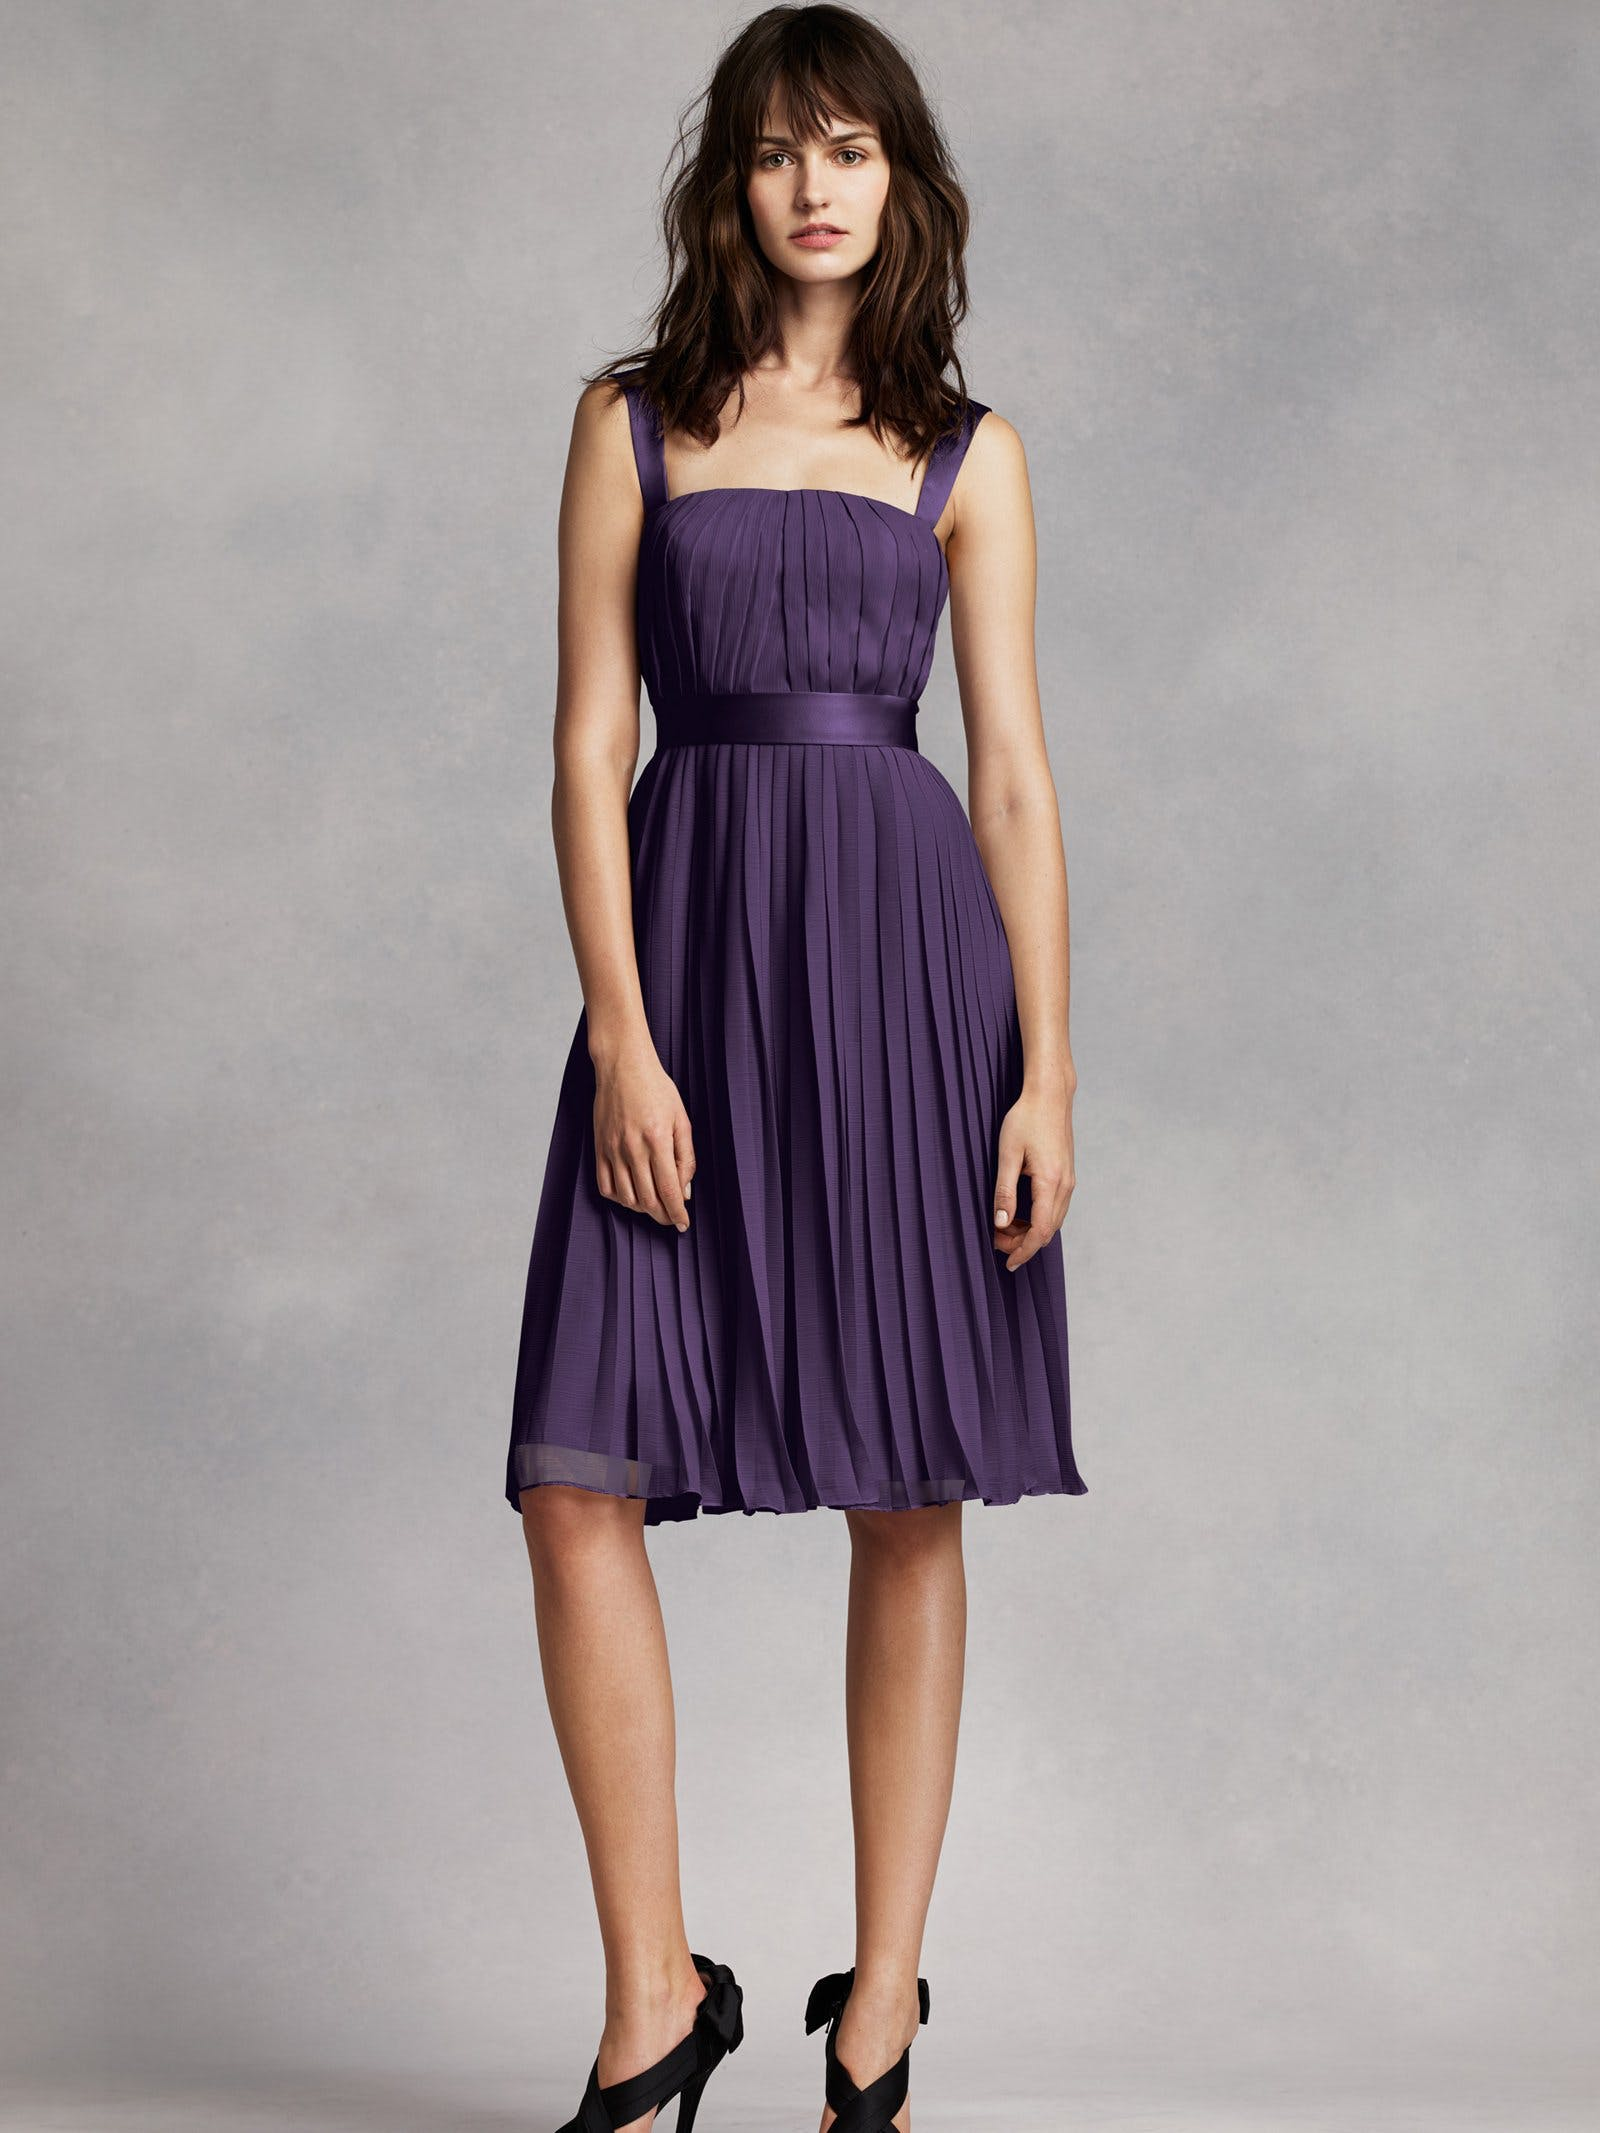 VW360214 bridesmaid dress   David s Bridal  2015 Vera Wang         David s Bridal 2015 Vera Wang VW360222  17